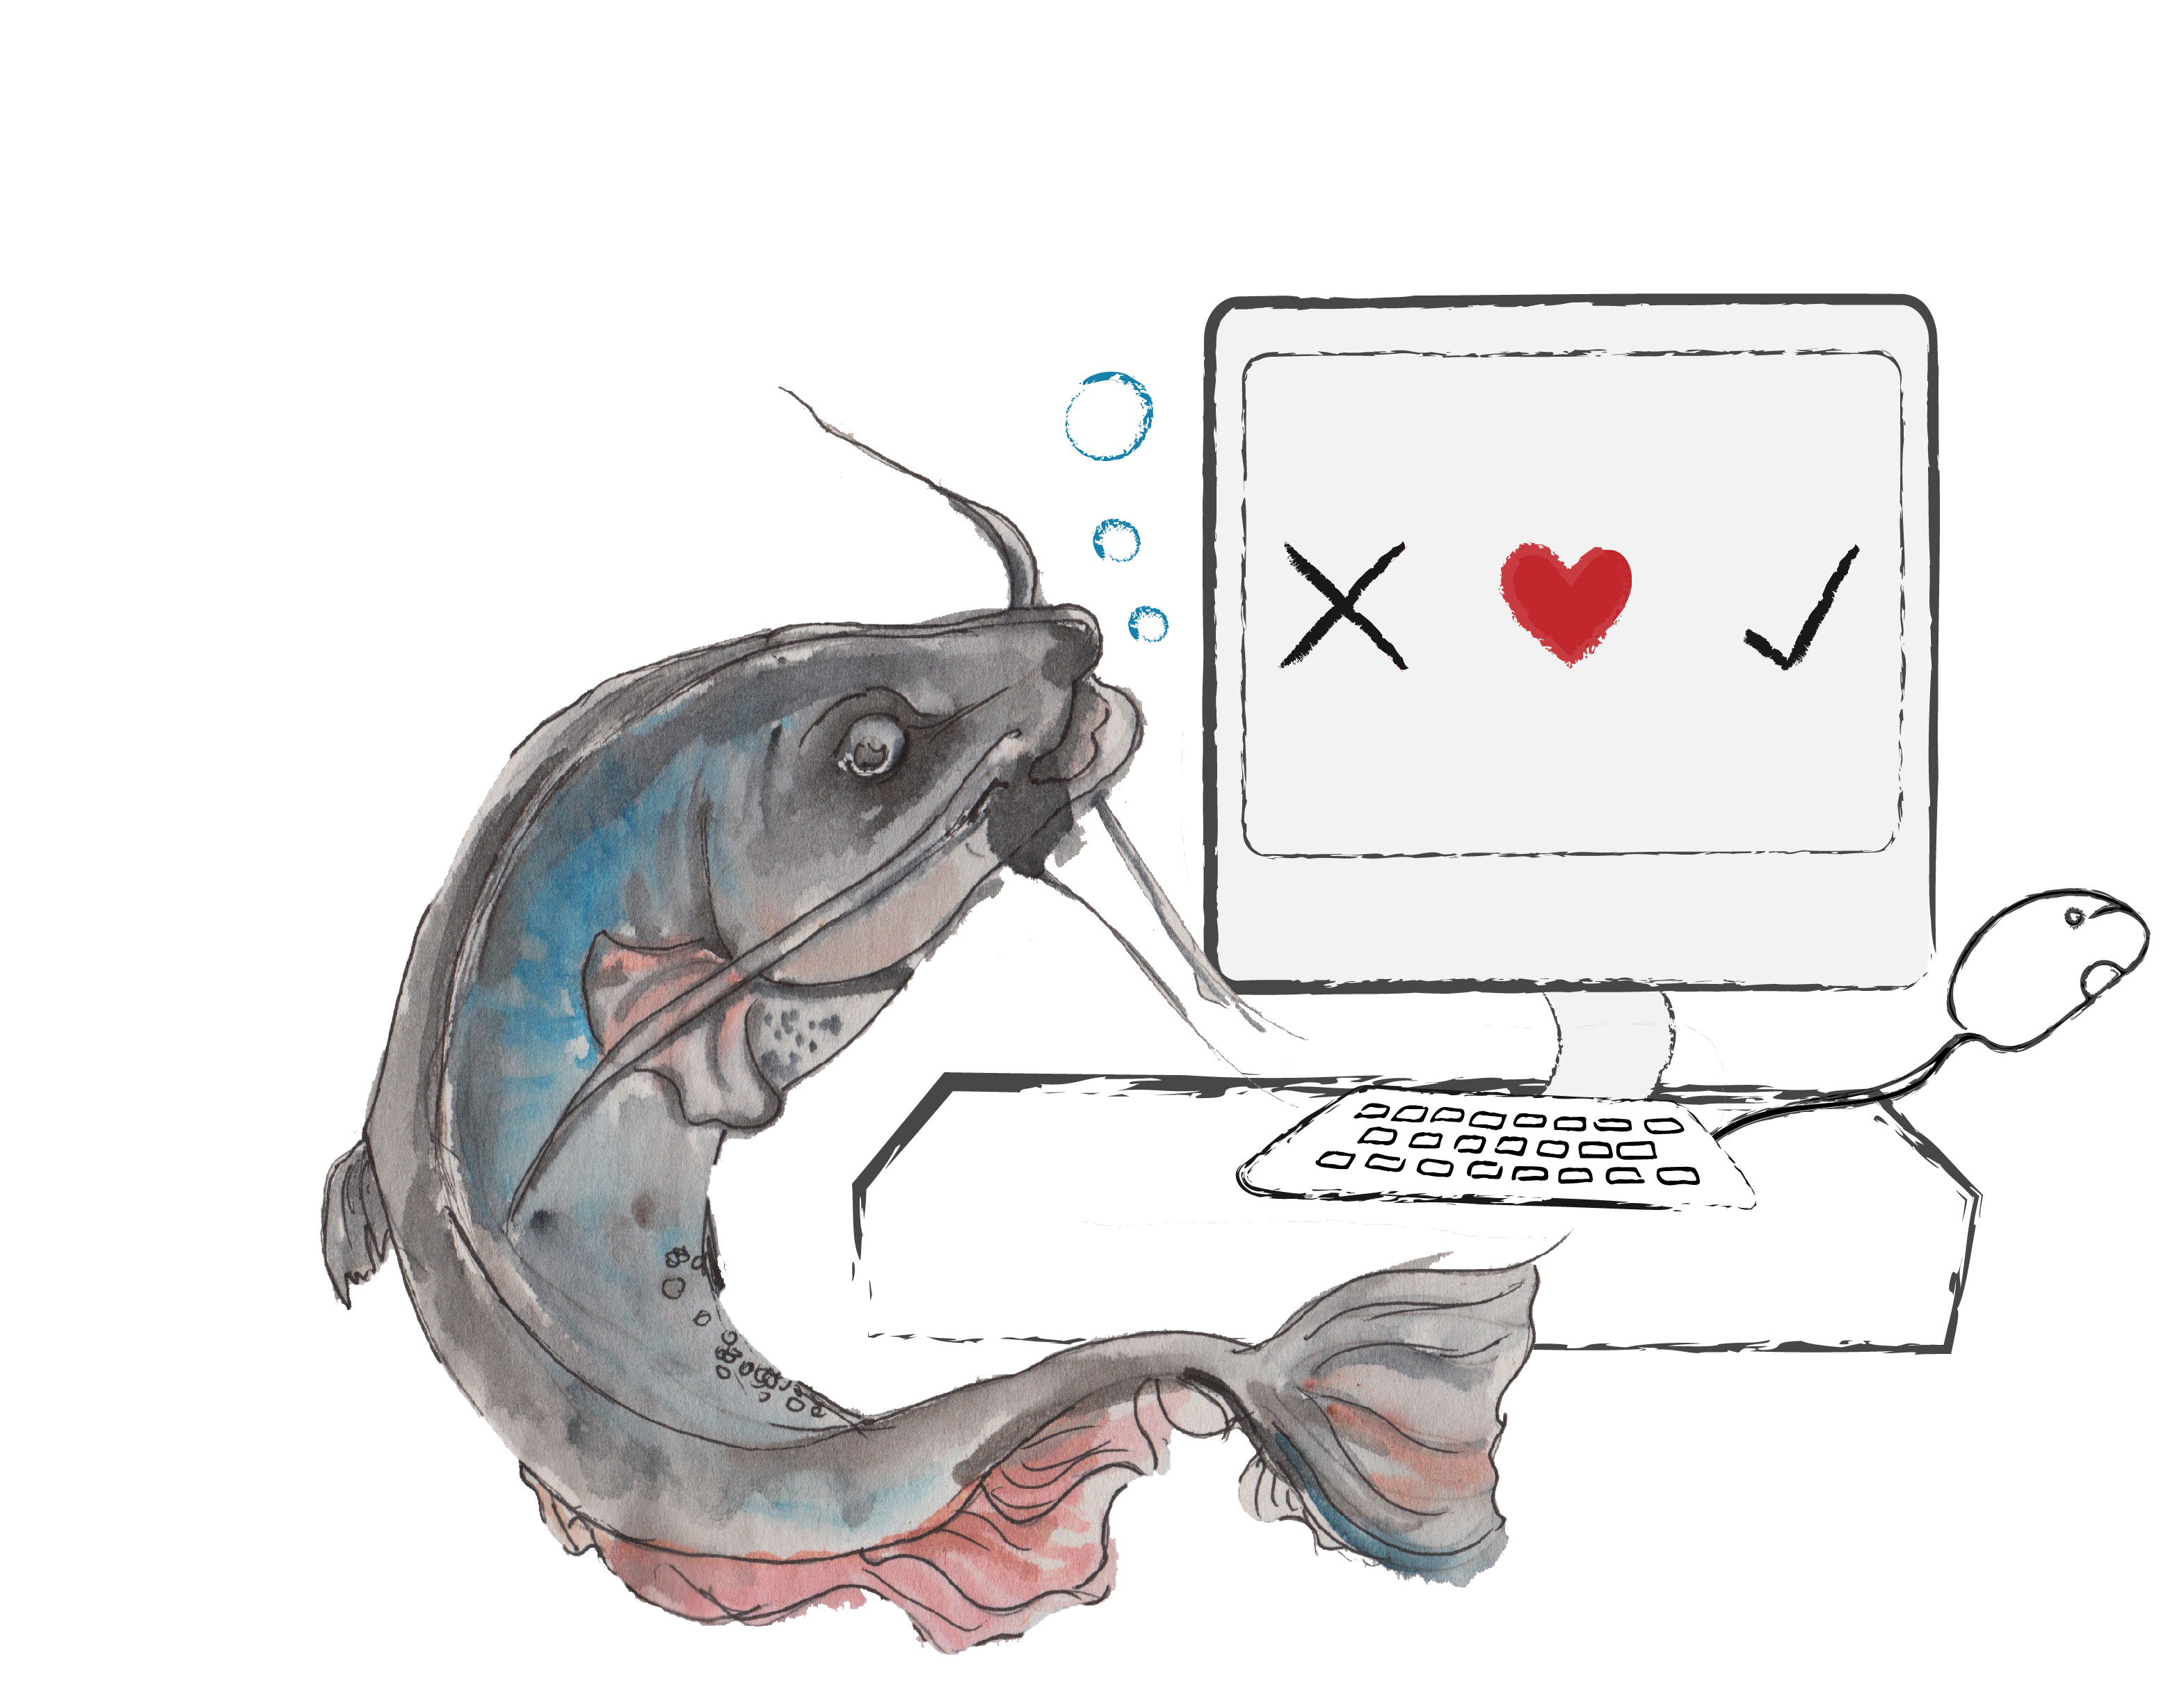 Catfishing for love